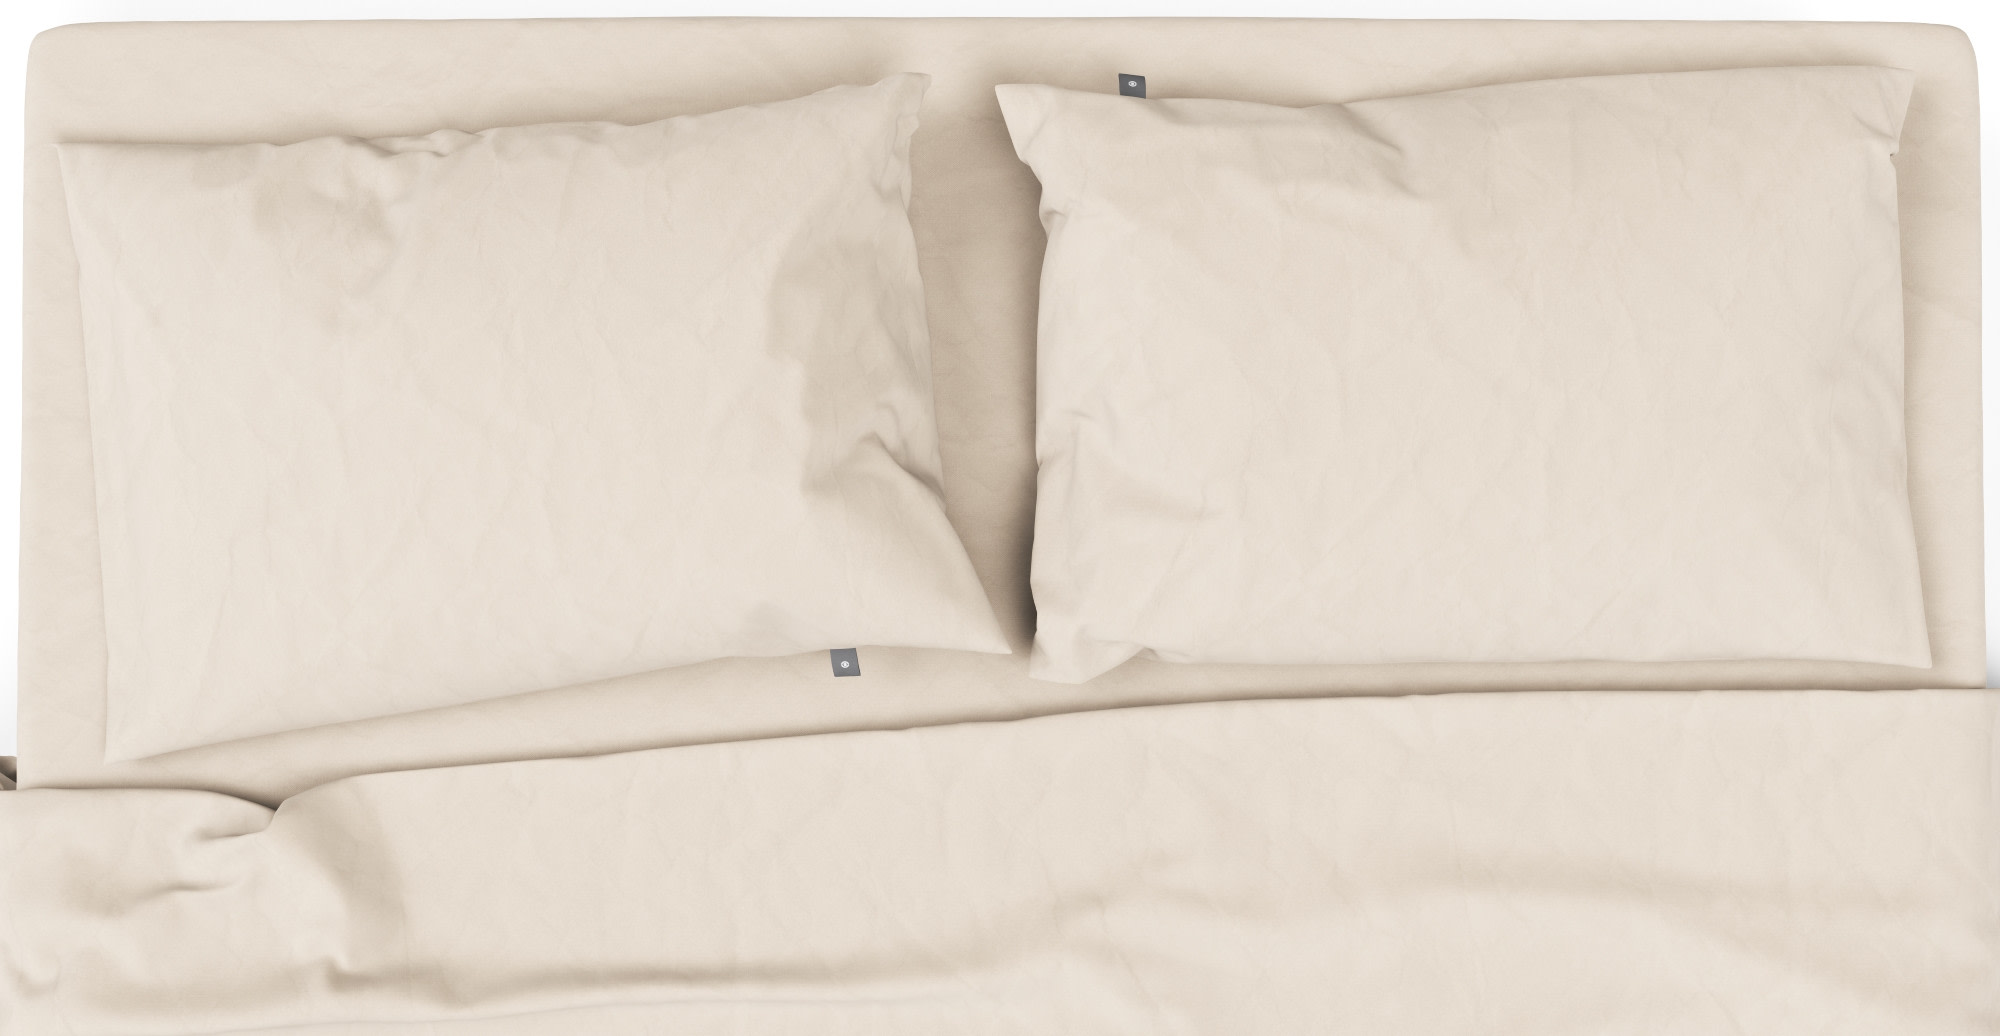 choosing the right pillows